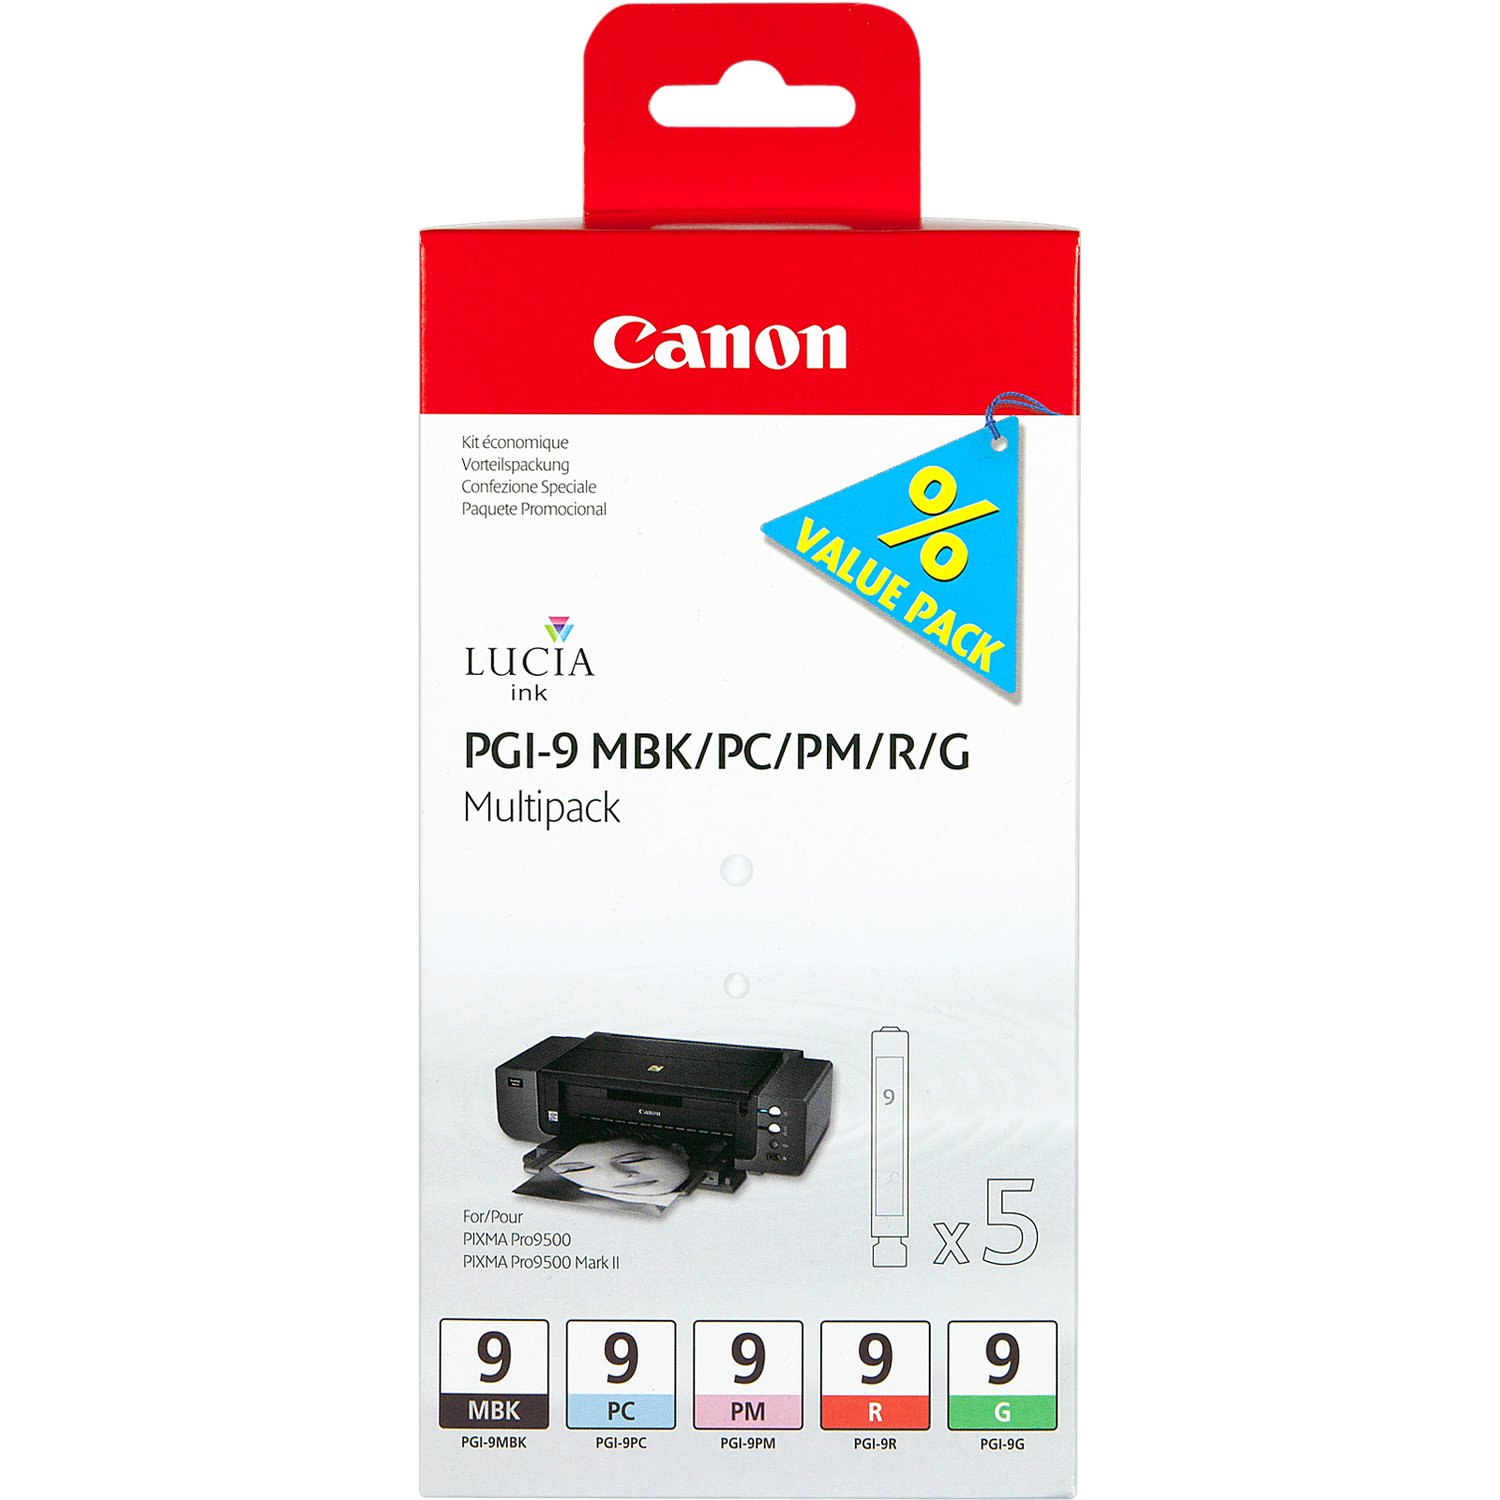 Canon LUCIA PGI-9 Ink Cartridge - Matte Black, Photo Cyan, Photo Magenta, Red, Green